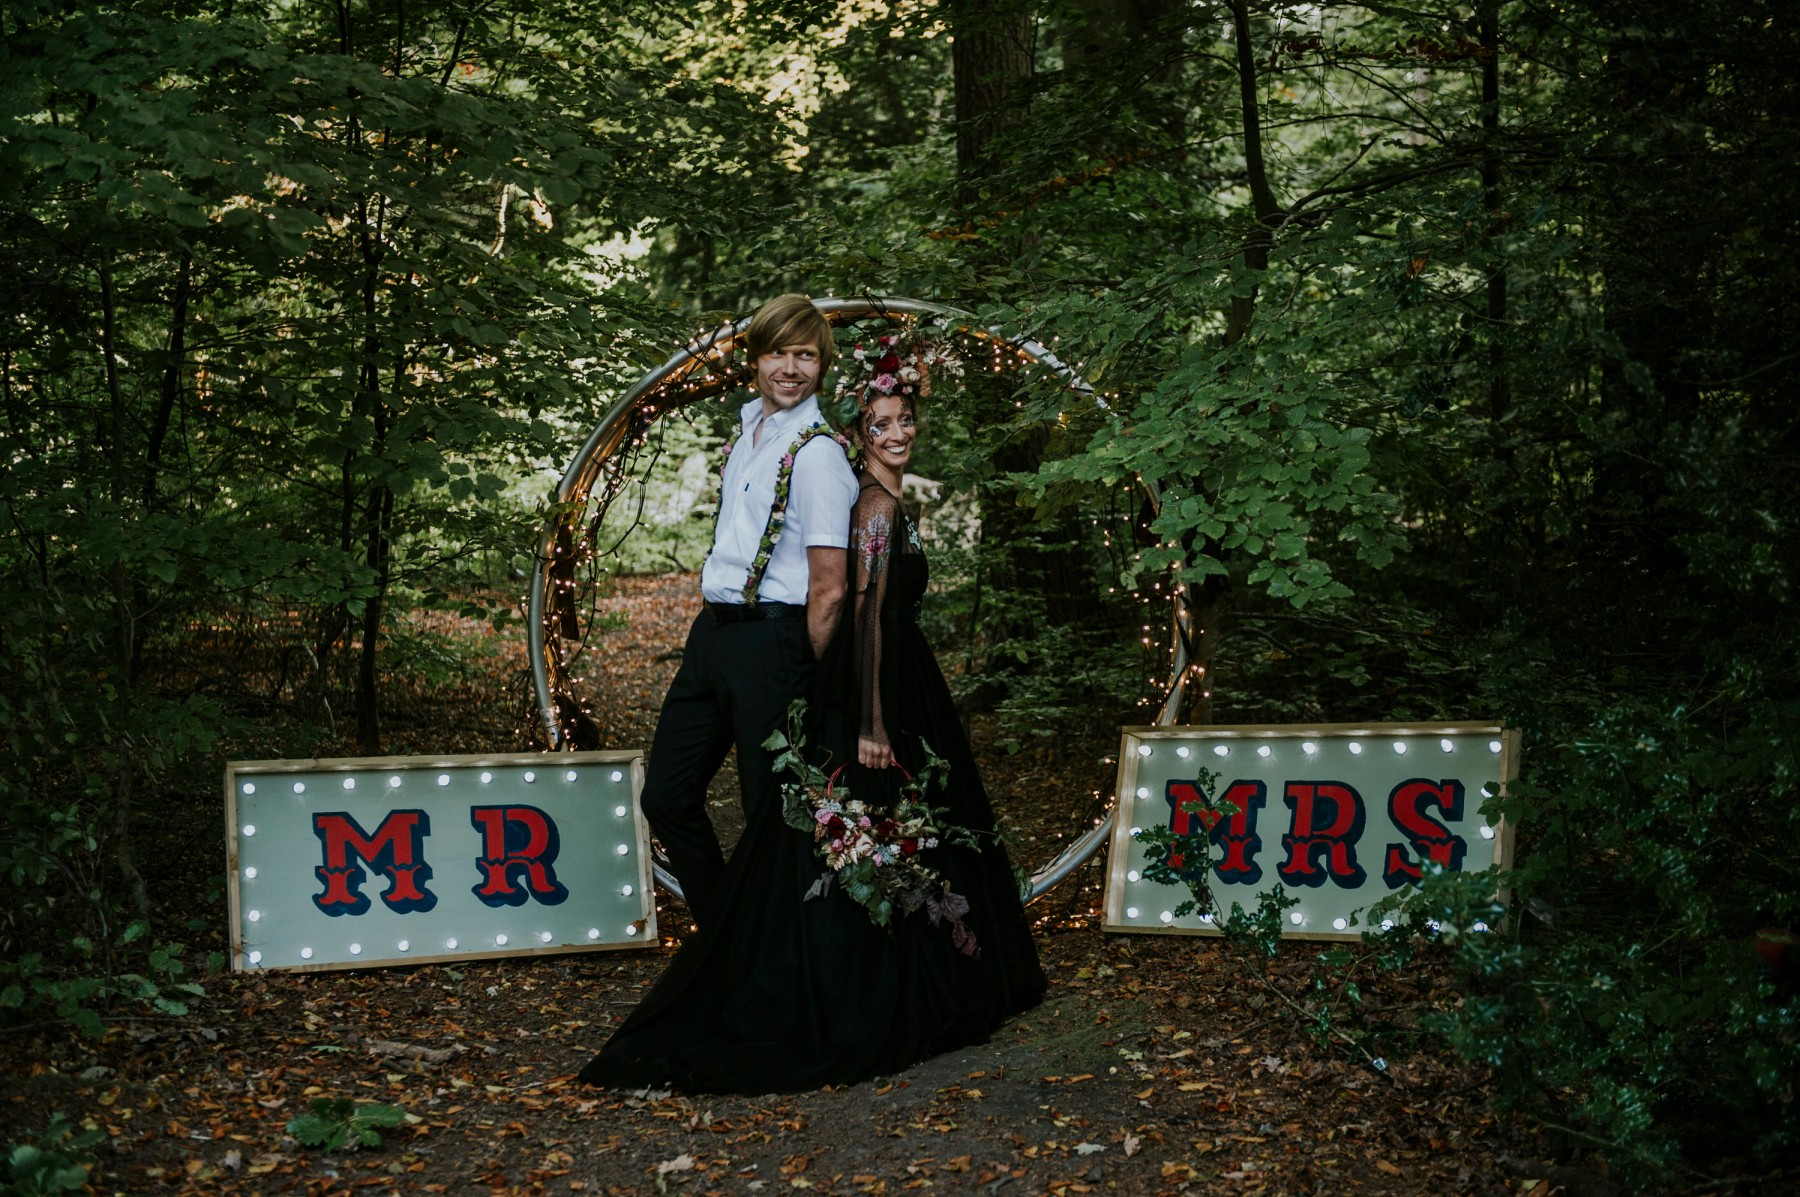 circus woodland wedding - retro mr & mrs sign - quirky wedding backdrop